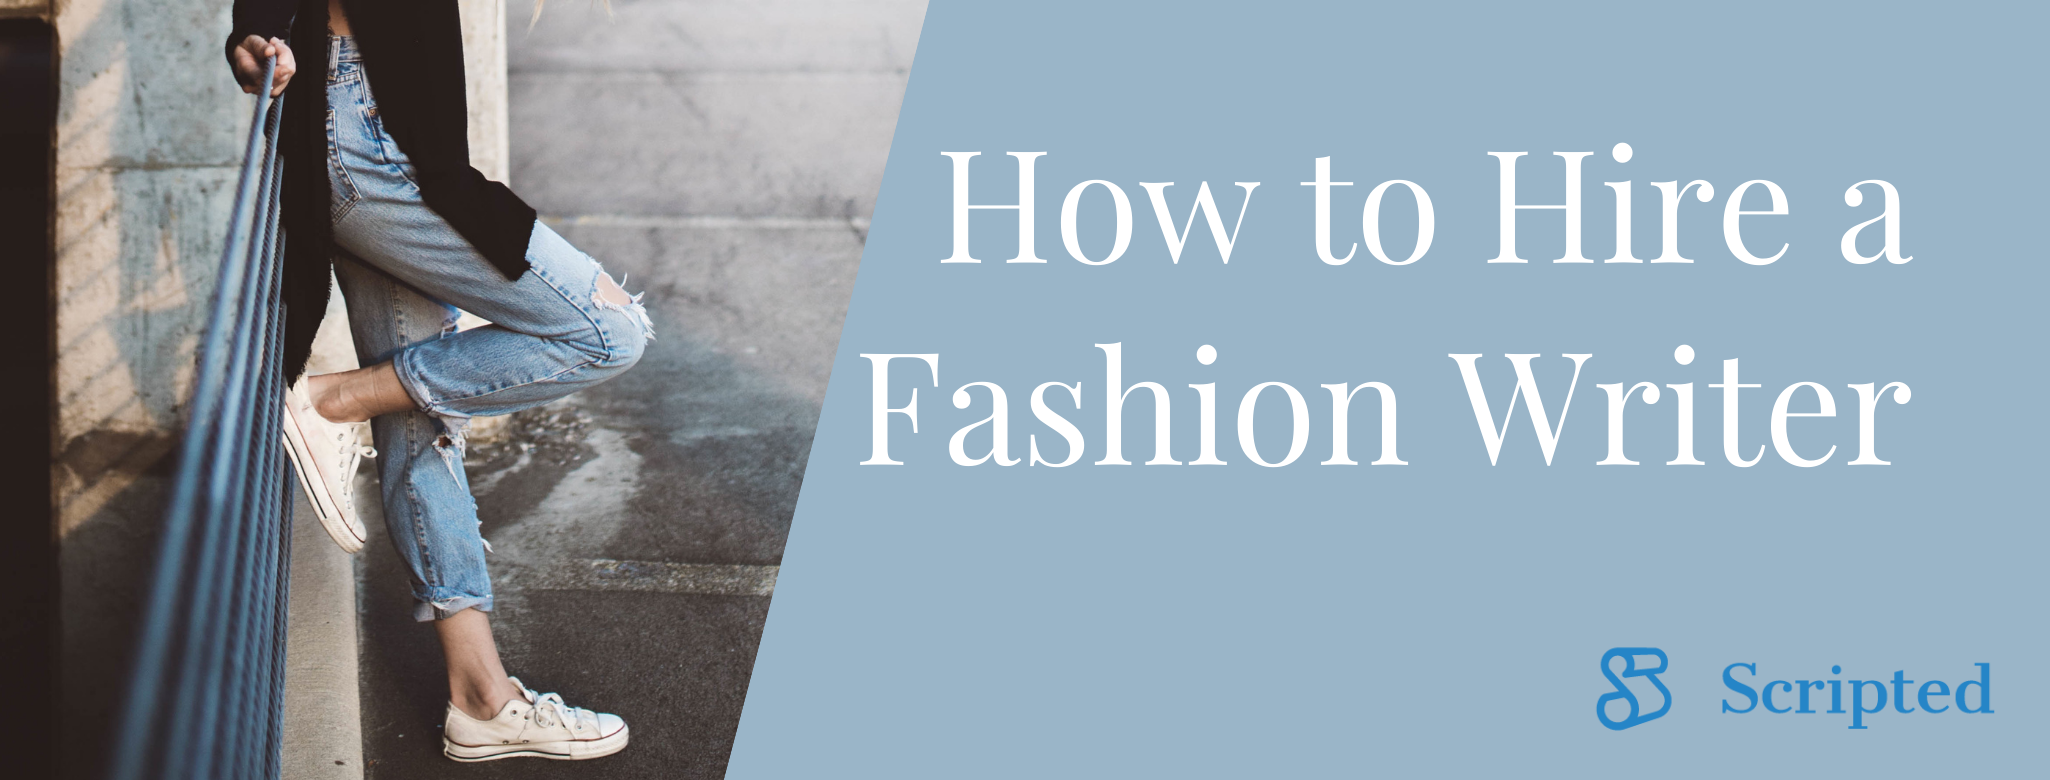 Hiring a Fashion Writer: The Step-By-Step Guide